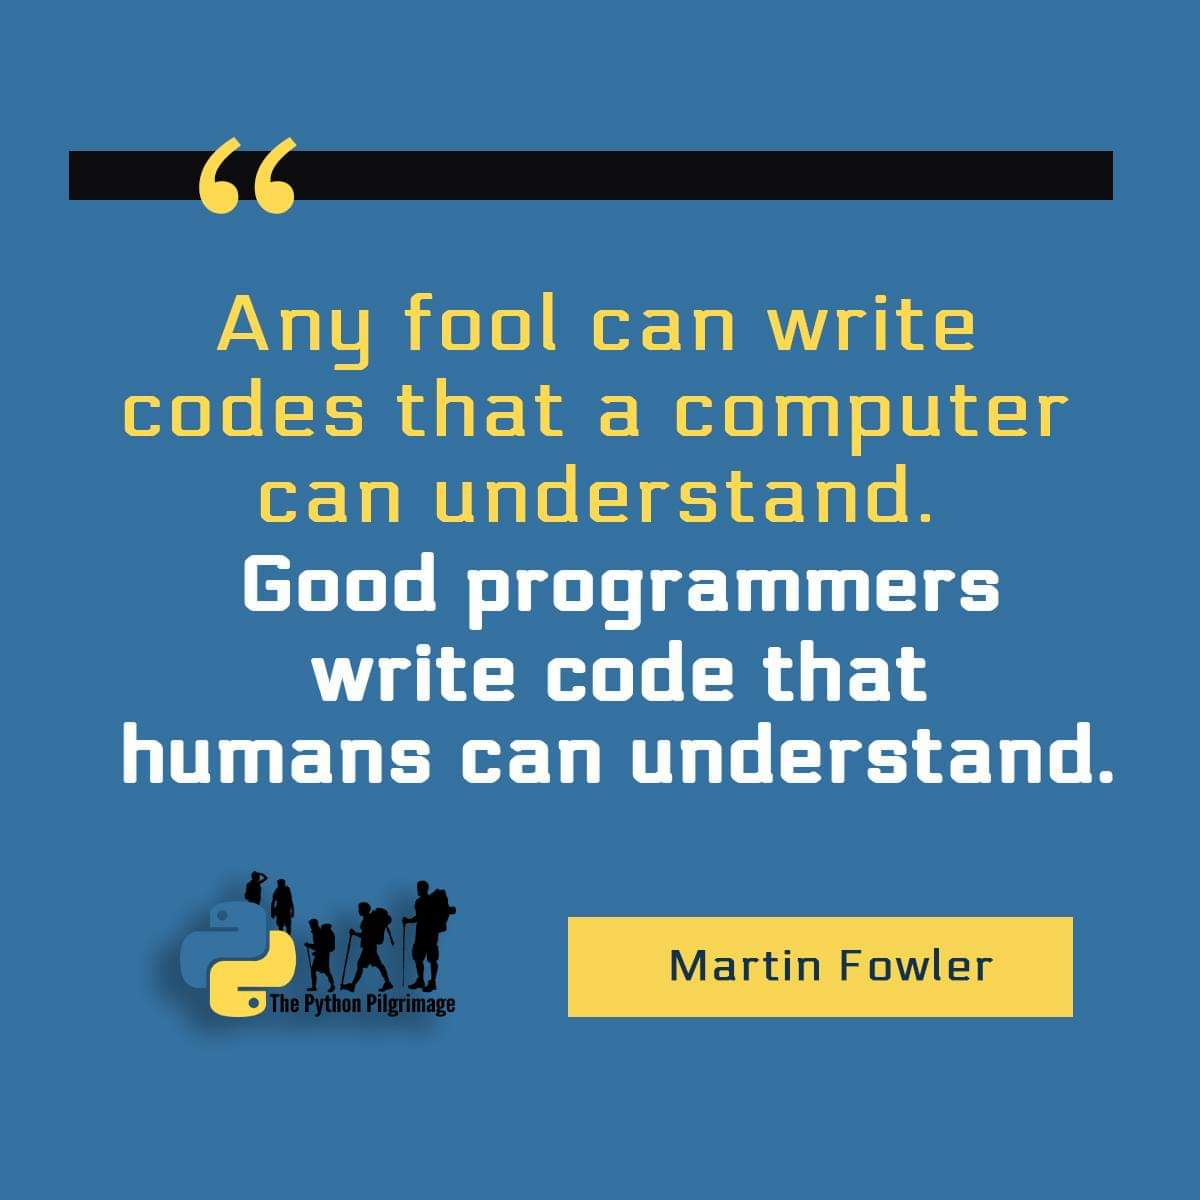 """Any fool can write codes that a computer can understand. Good programmers write code that humans can understand.""  -Martin Fowler #quoteoftheday #mondayquotes #mondaymotivation #mondaymoods #mondayvibes #mondaymood #fool #write #codes #understand #good #programmers #human"